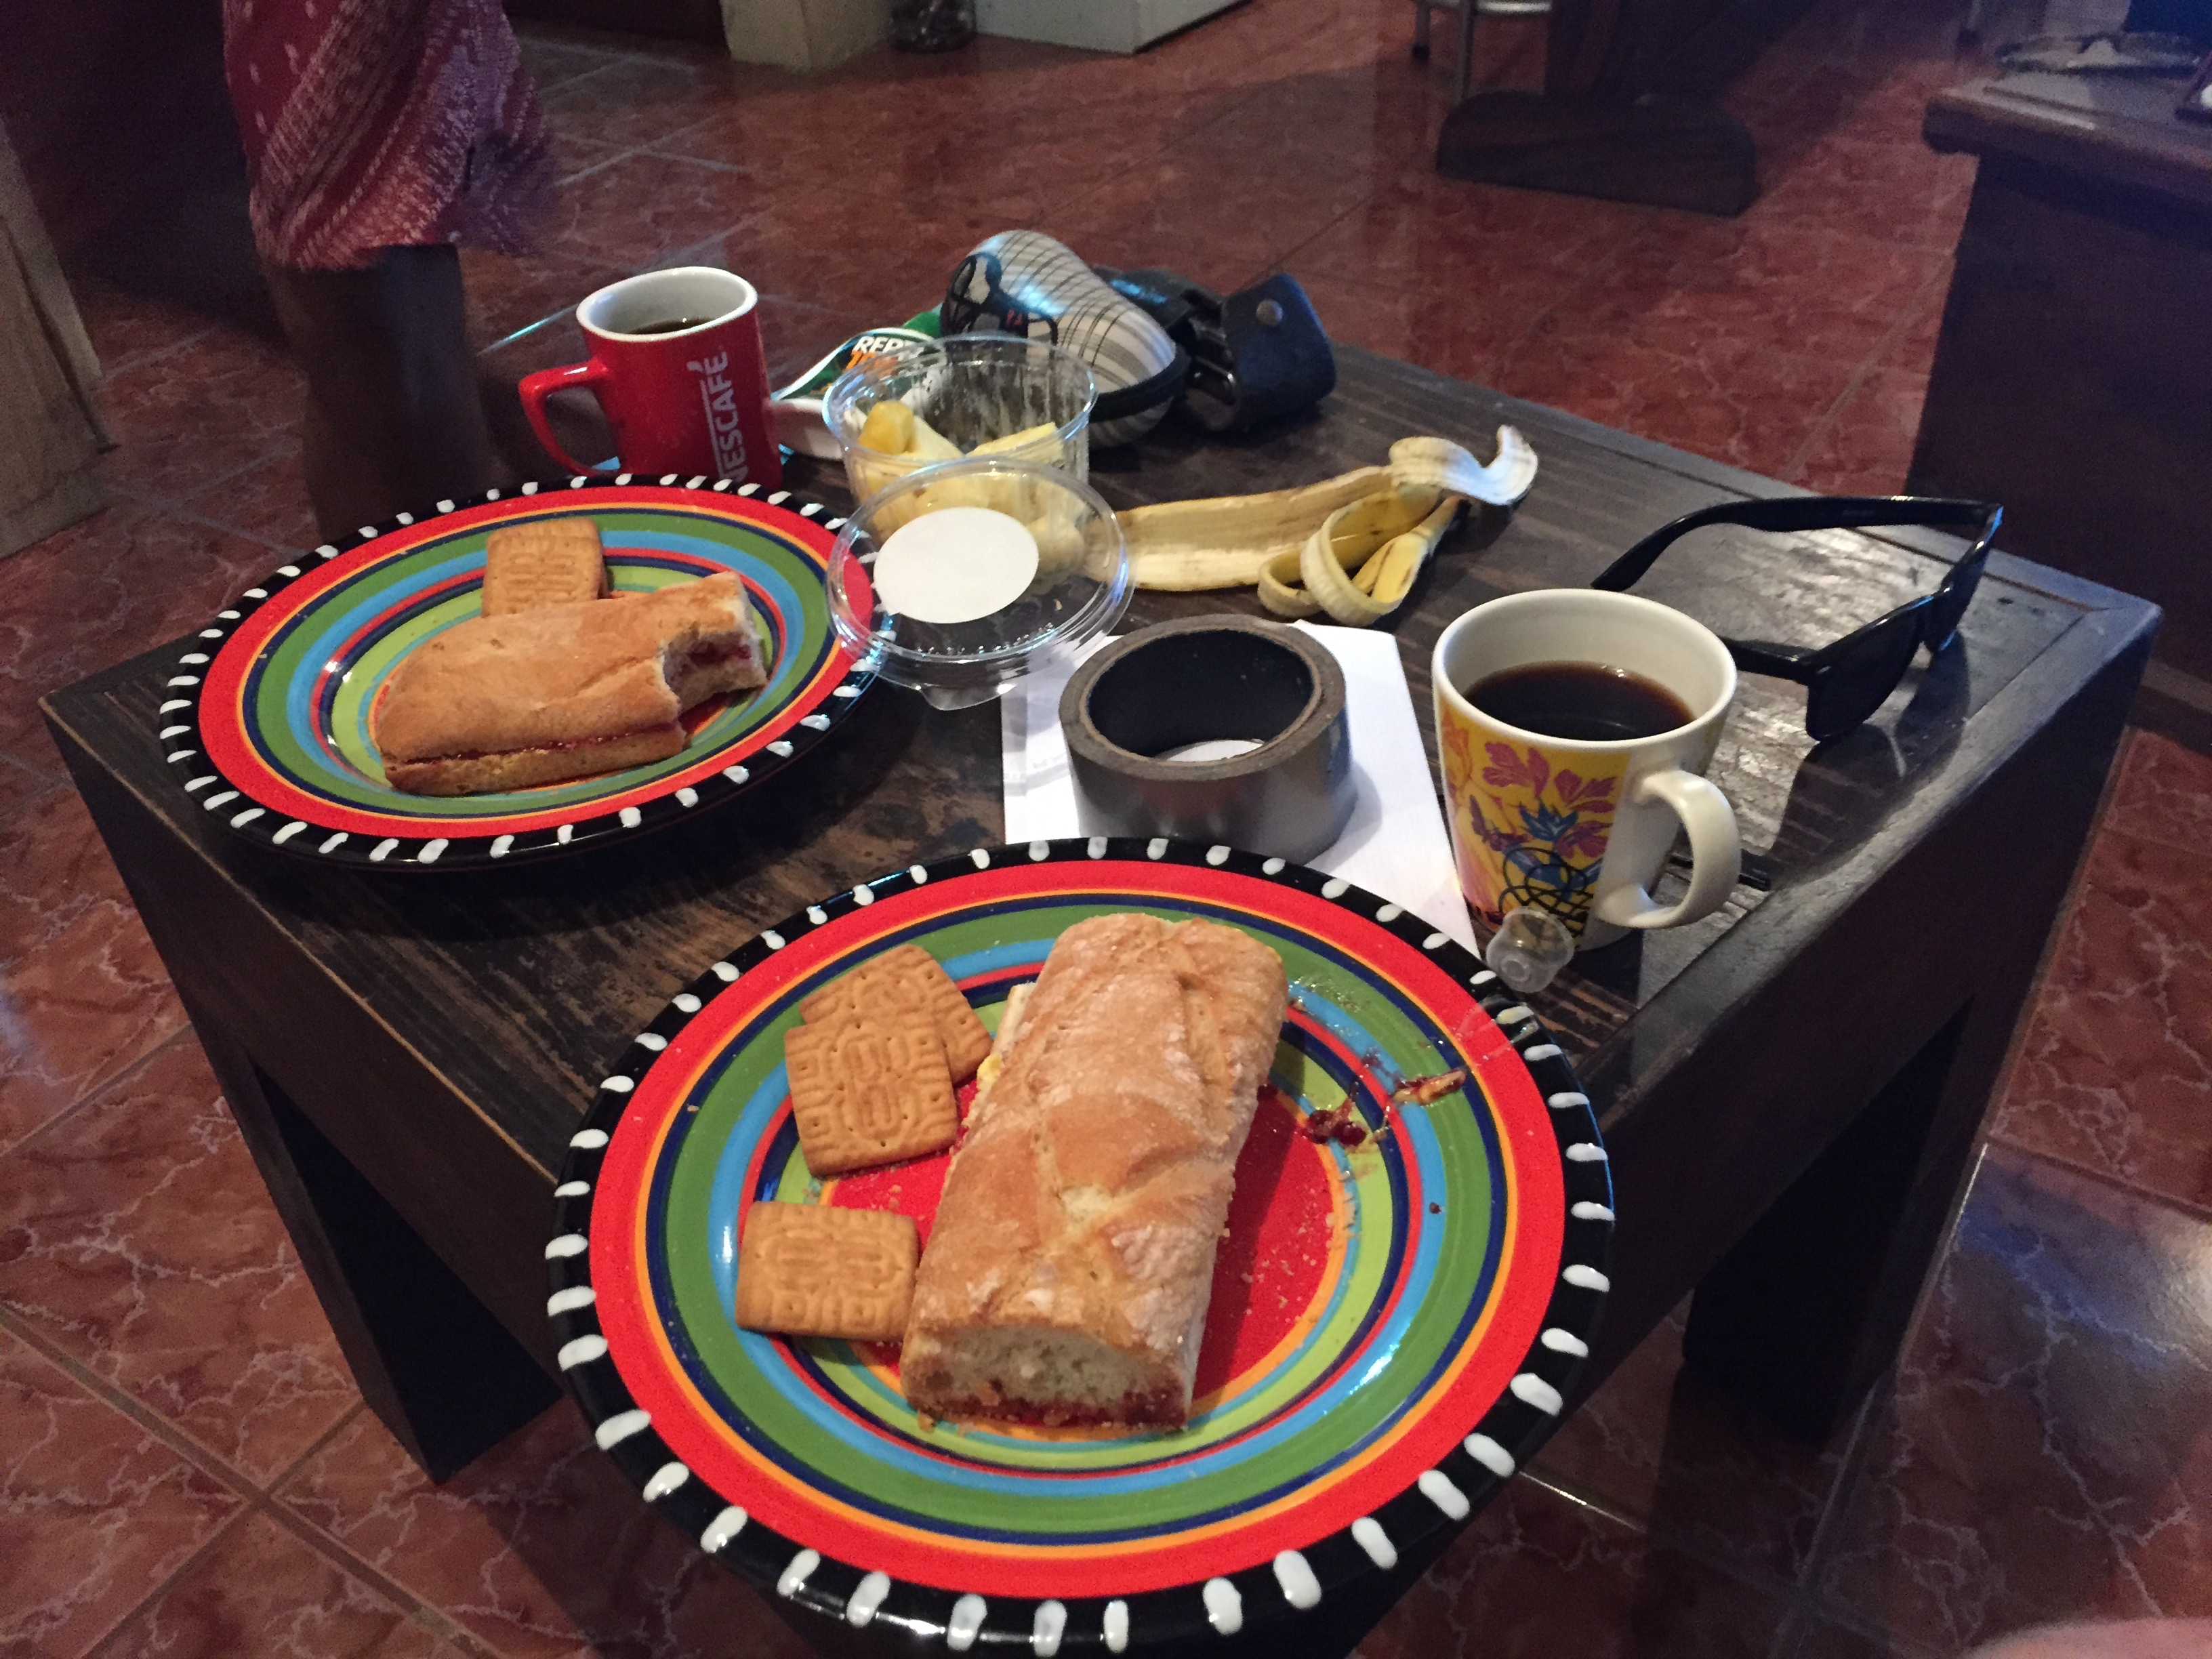 Bread, coffee, and bananas on a table in a living room in Costa Rica.